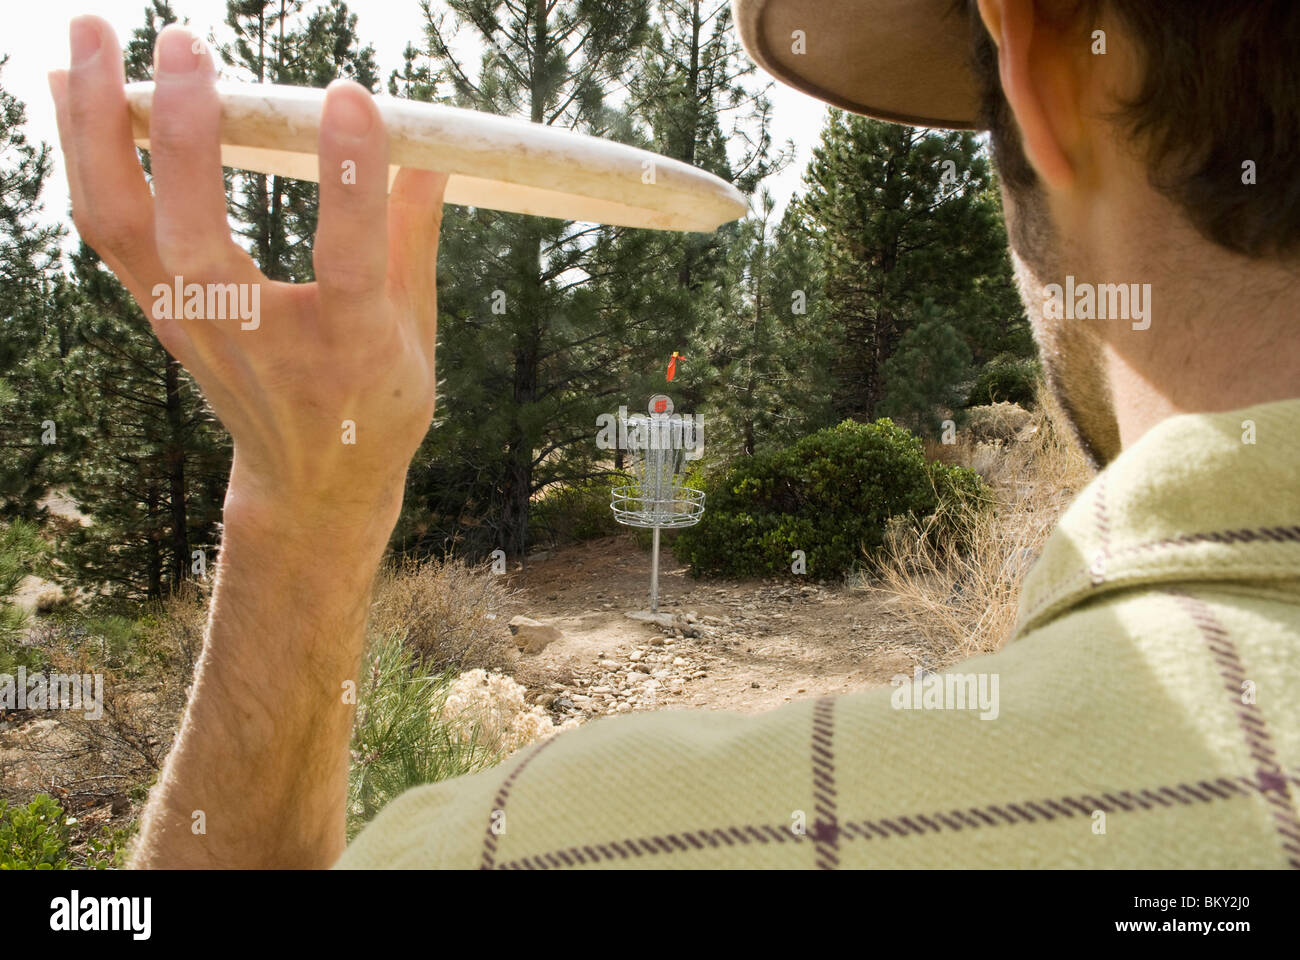 A young man perfects the pizza toss during a game of disc golf in Lake Tahoe, California. - Stock Image